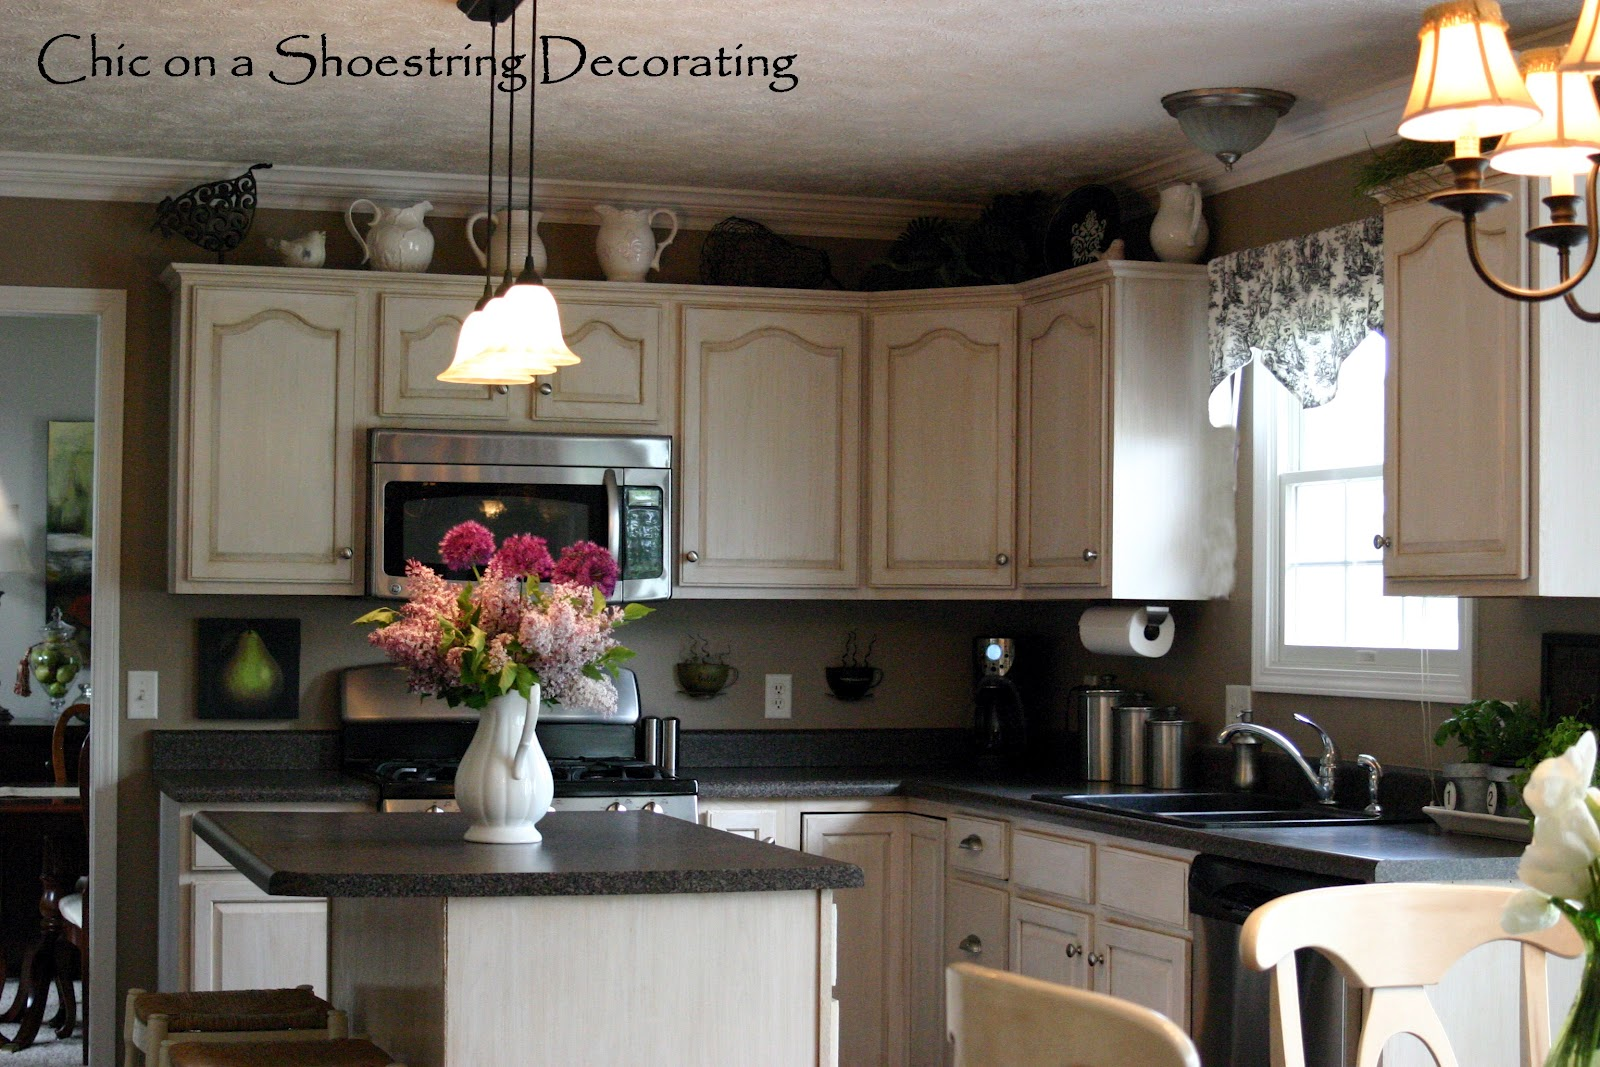 Kitchen CabiTop Decorating Ideas